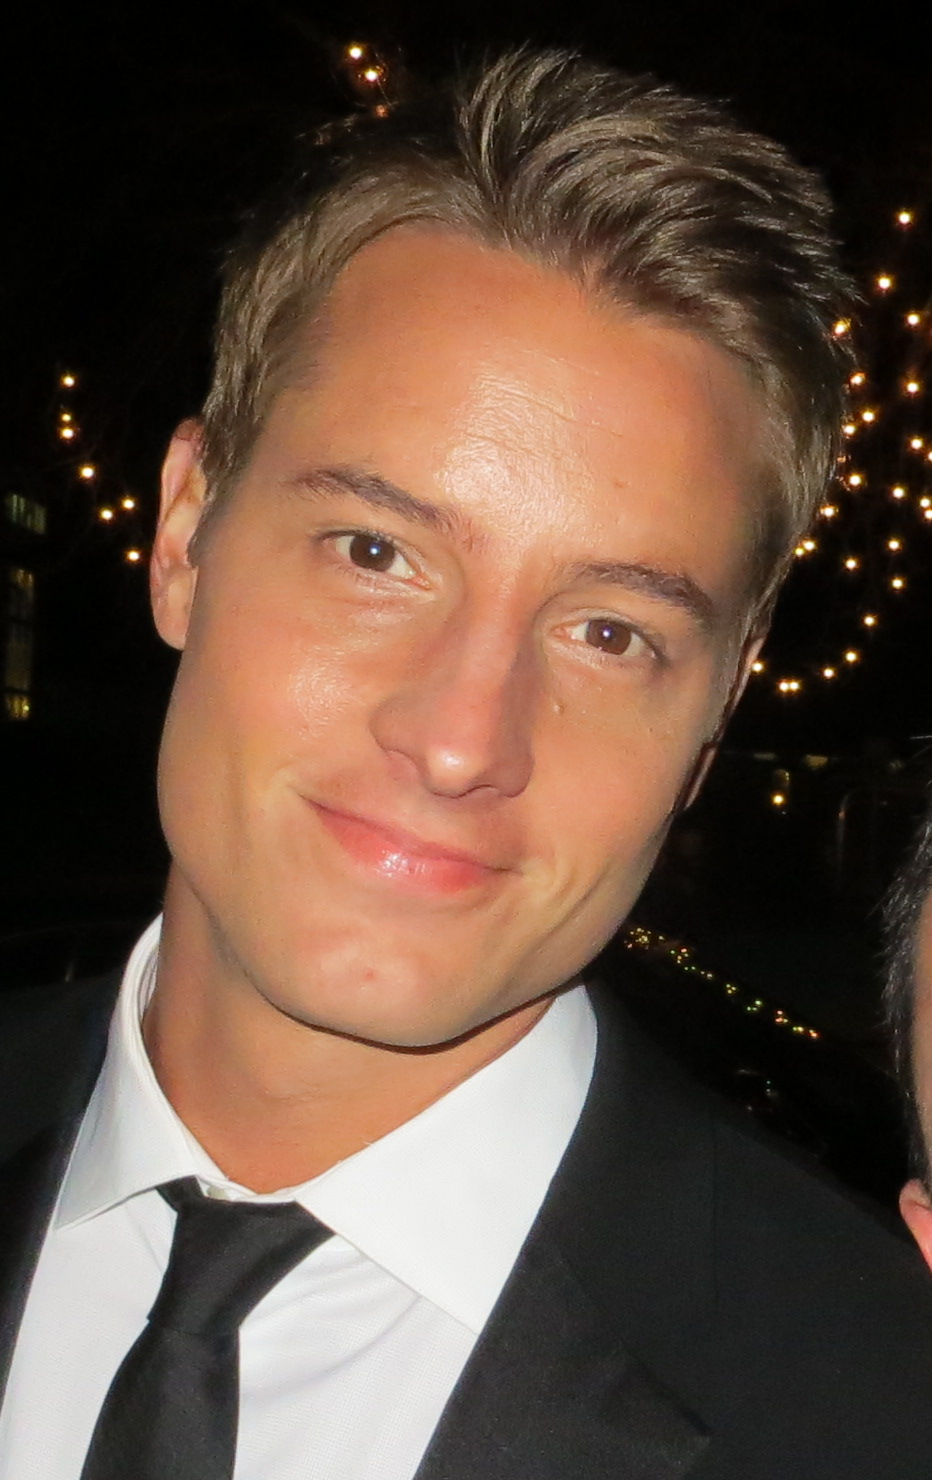 Justin Hartley - Wikipedia